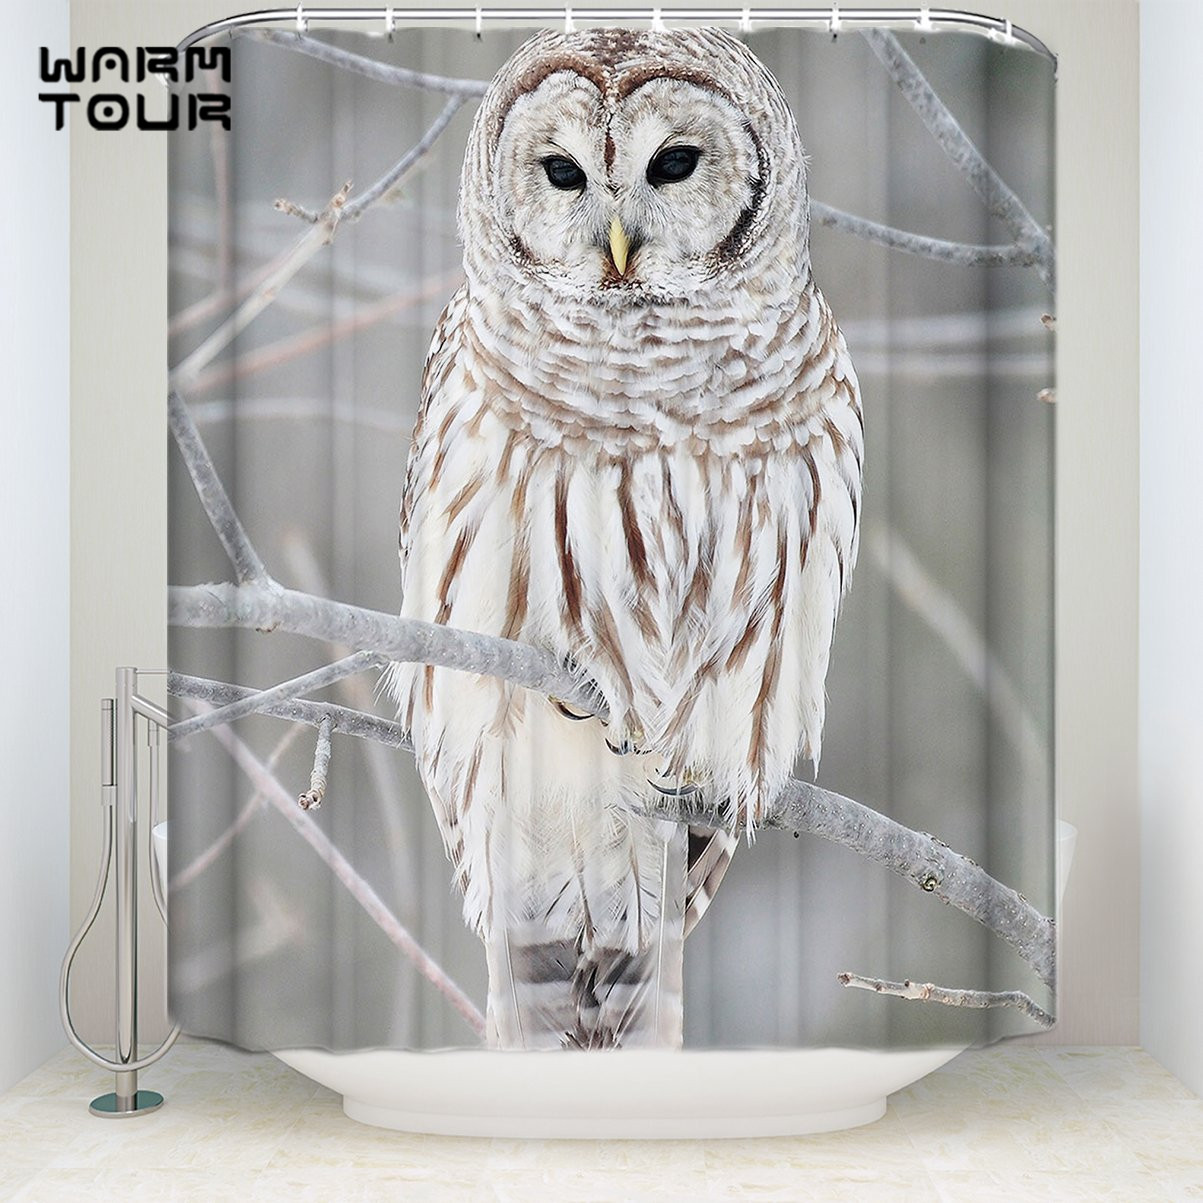 Extra Long Fabric Bath Shower Curtains Owl Tree Mildew Resistant Bathroom Decor Sets With Hooks 72